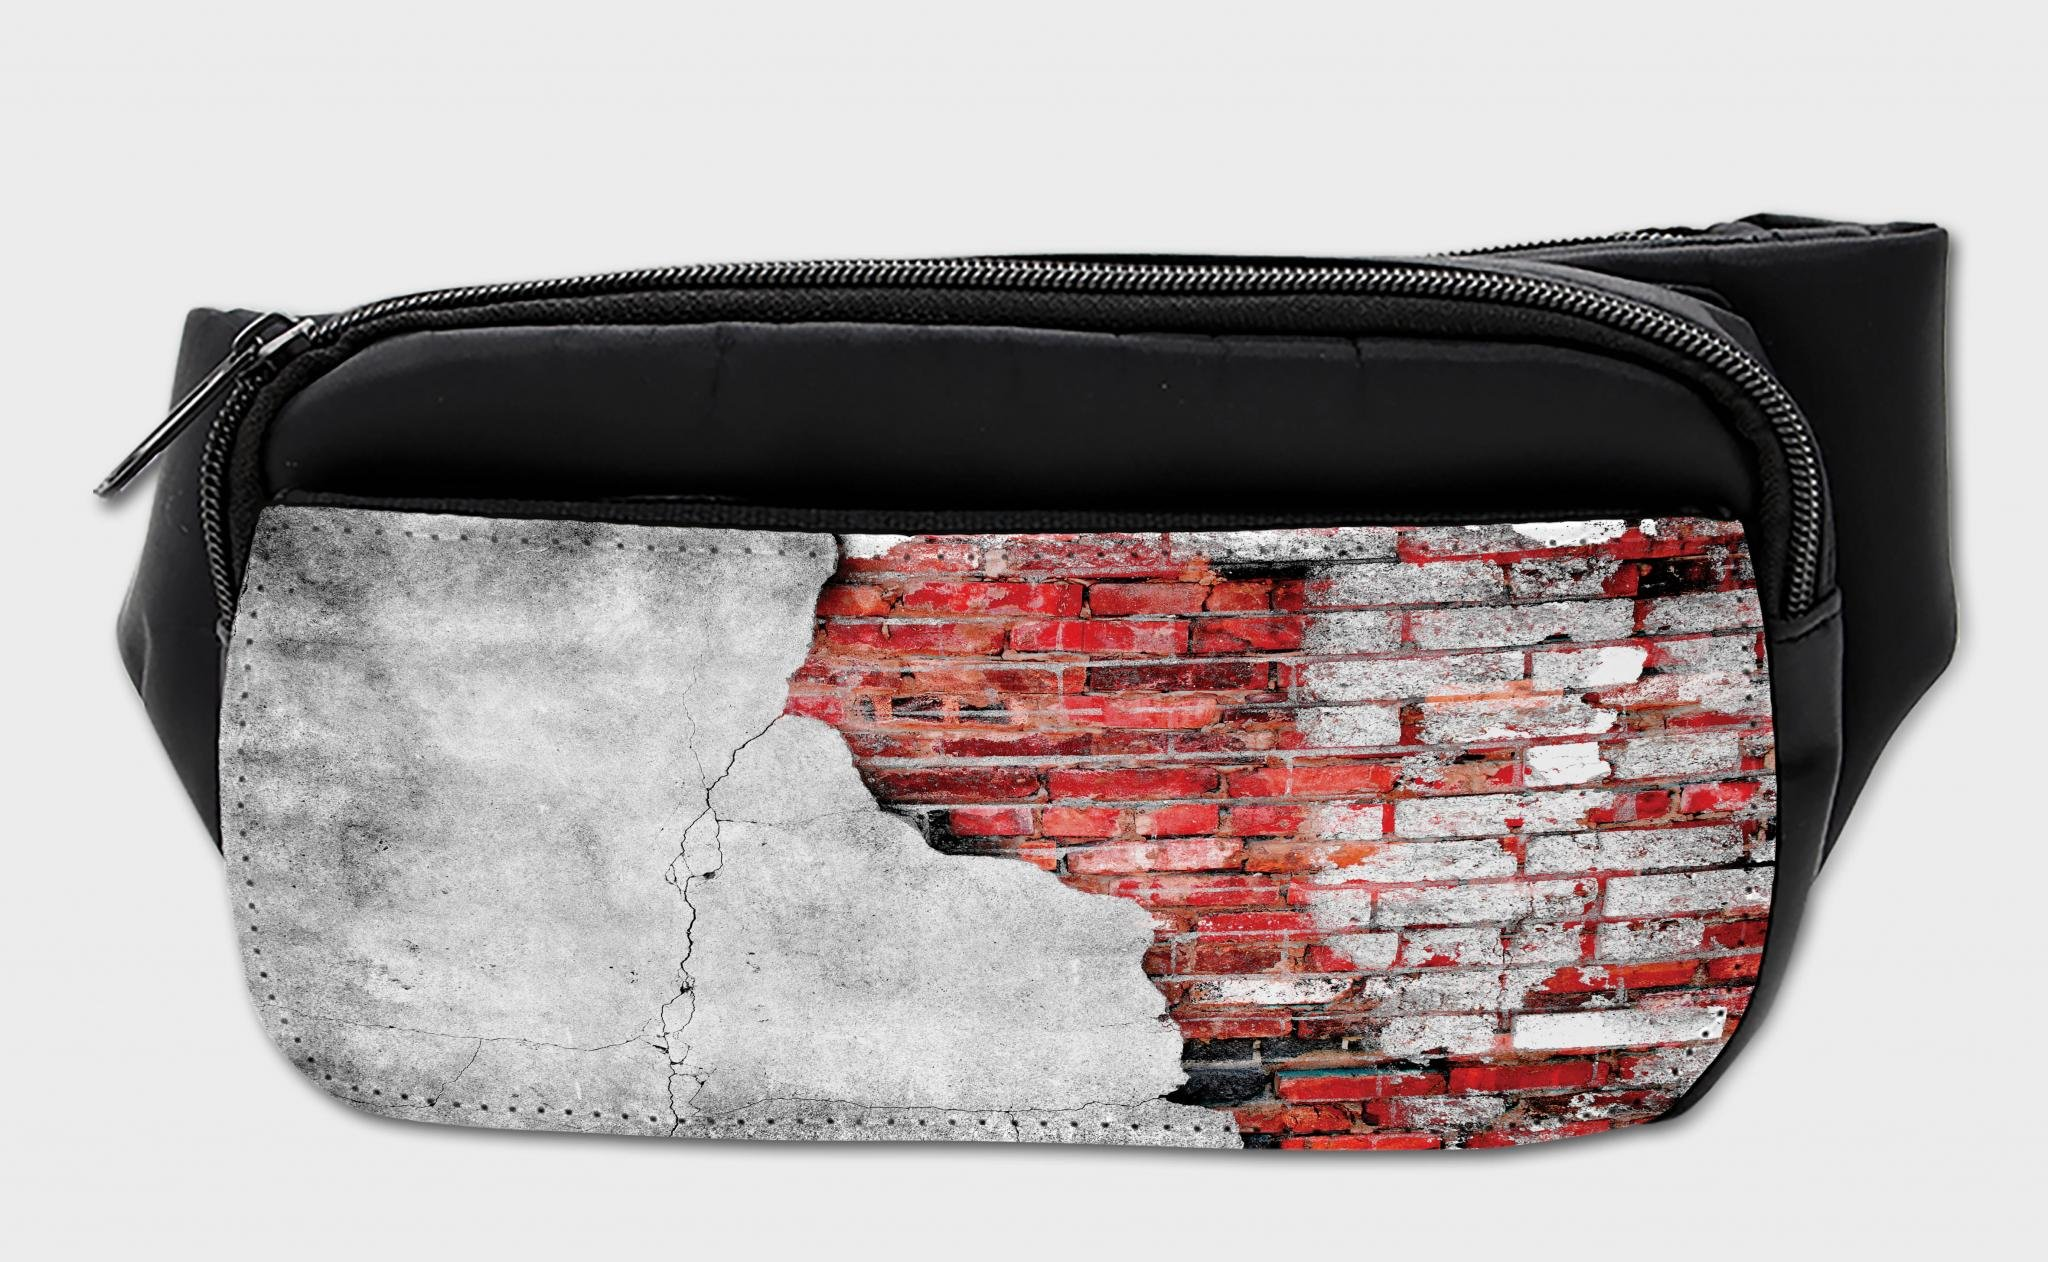 Lunarable Red and Black Bumbag, Cracked House Wall, Fanny Pack Hip Waist Bag